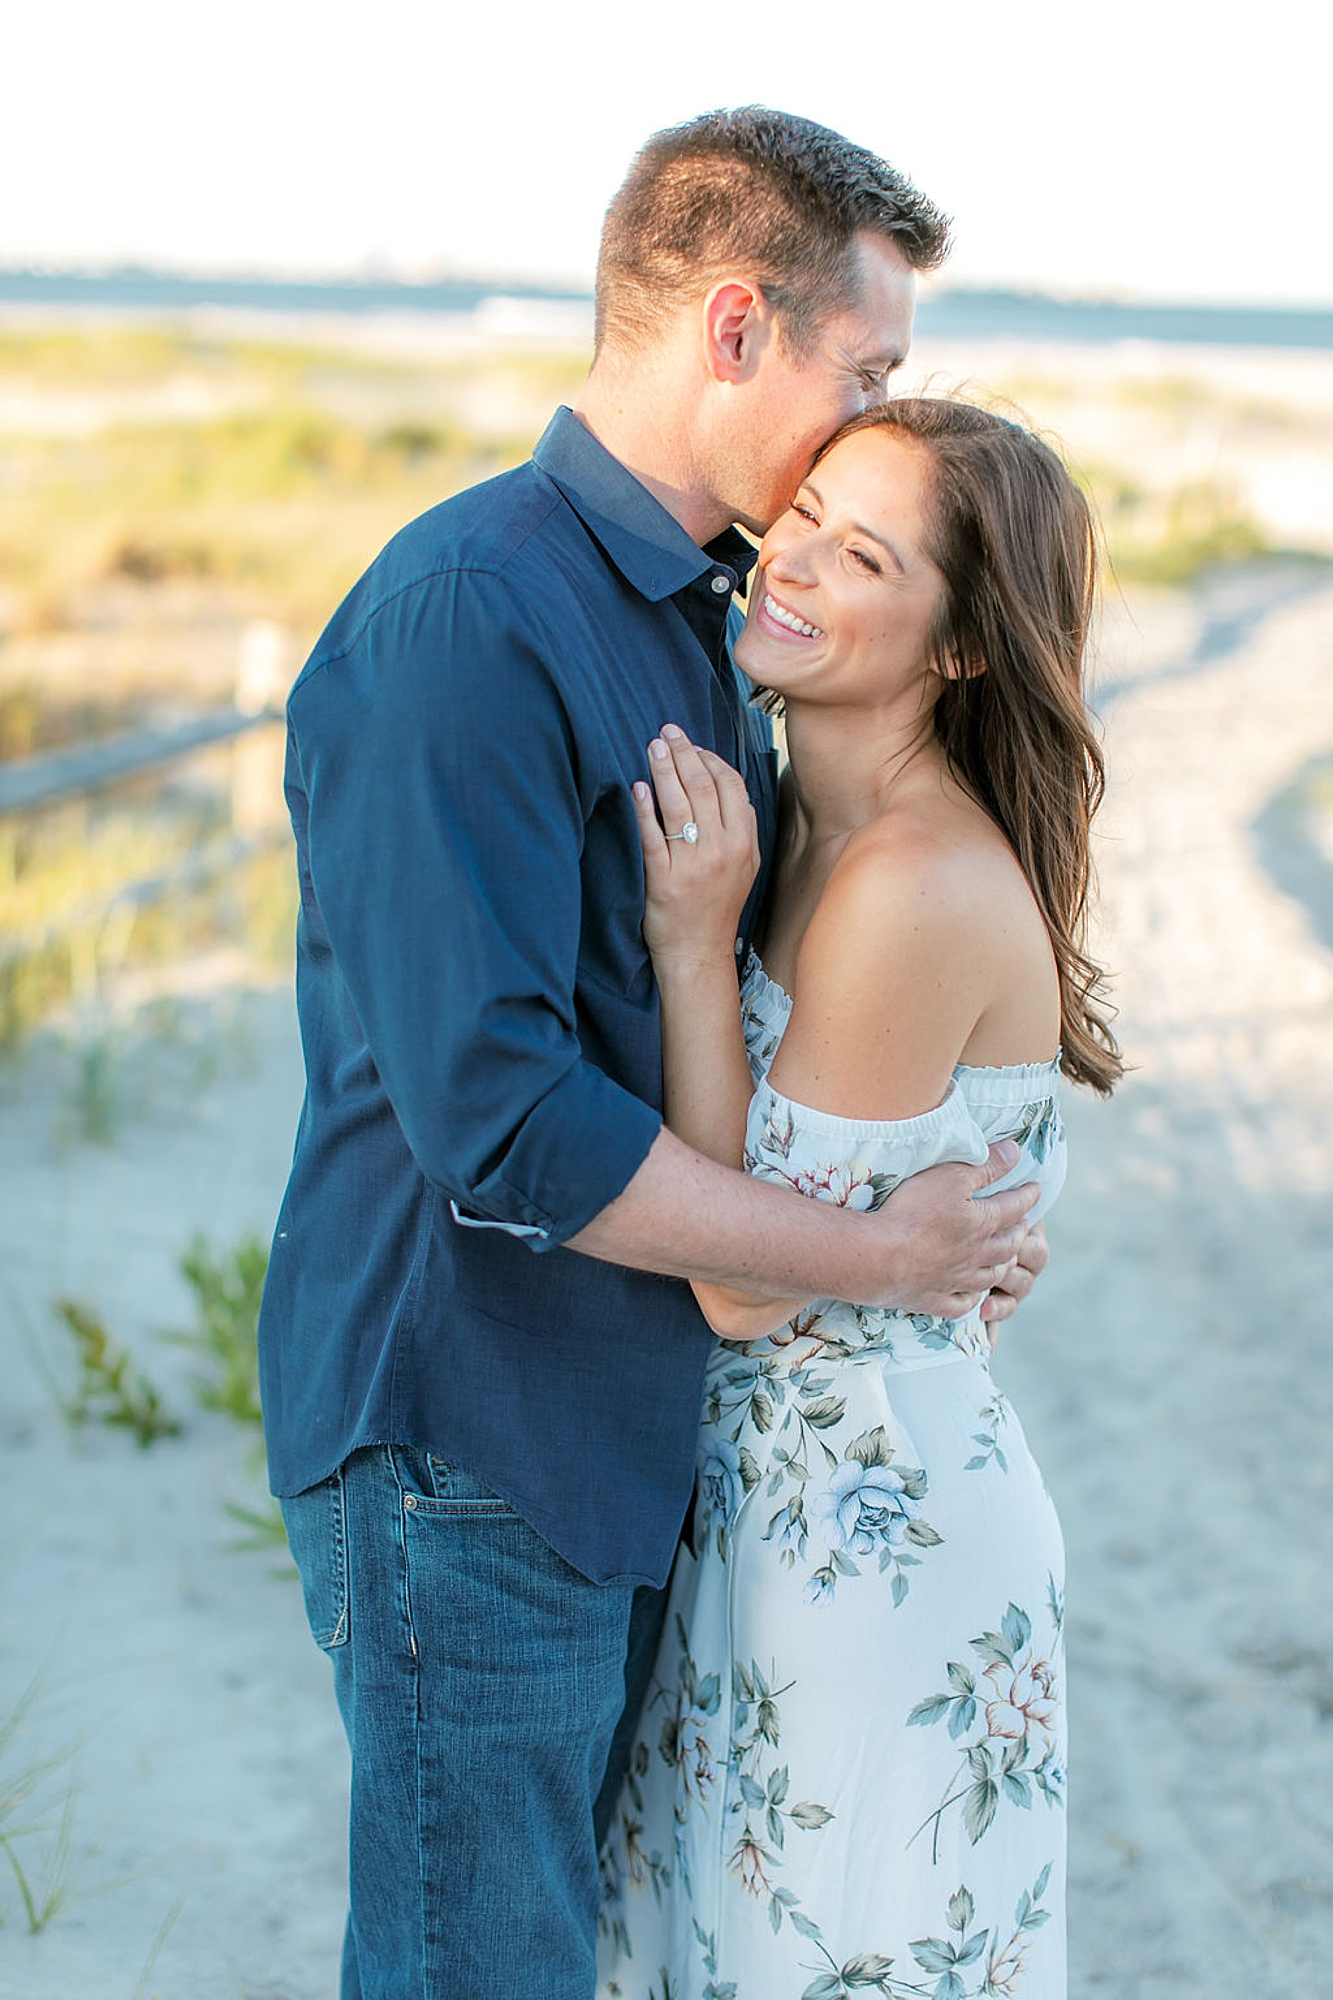 Film Engagement Session Photography in Ocean City NJ by Magdalena Studios 0031